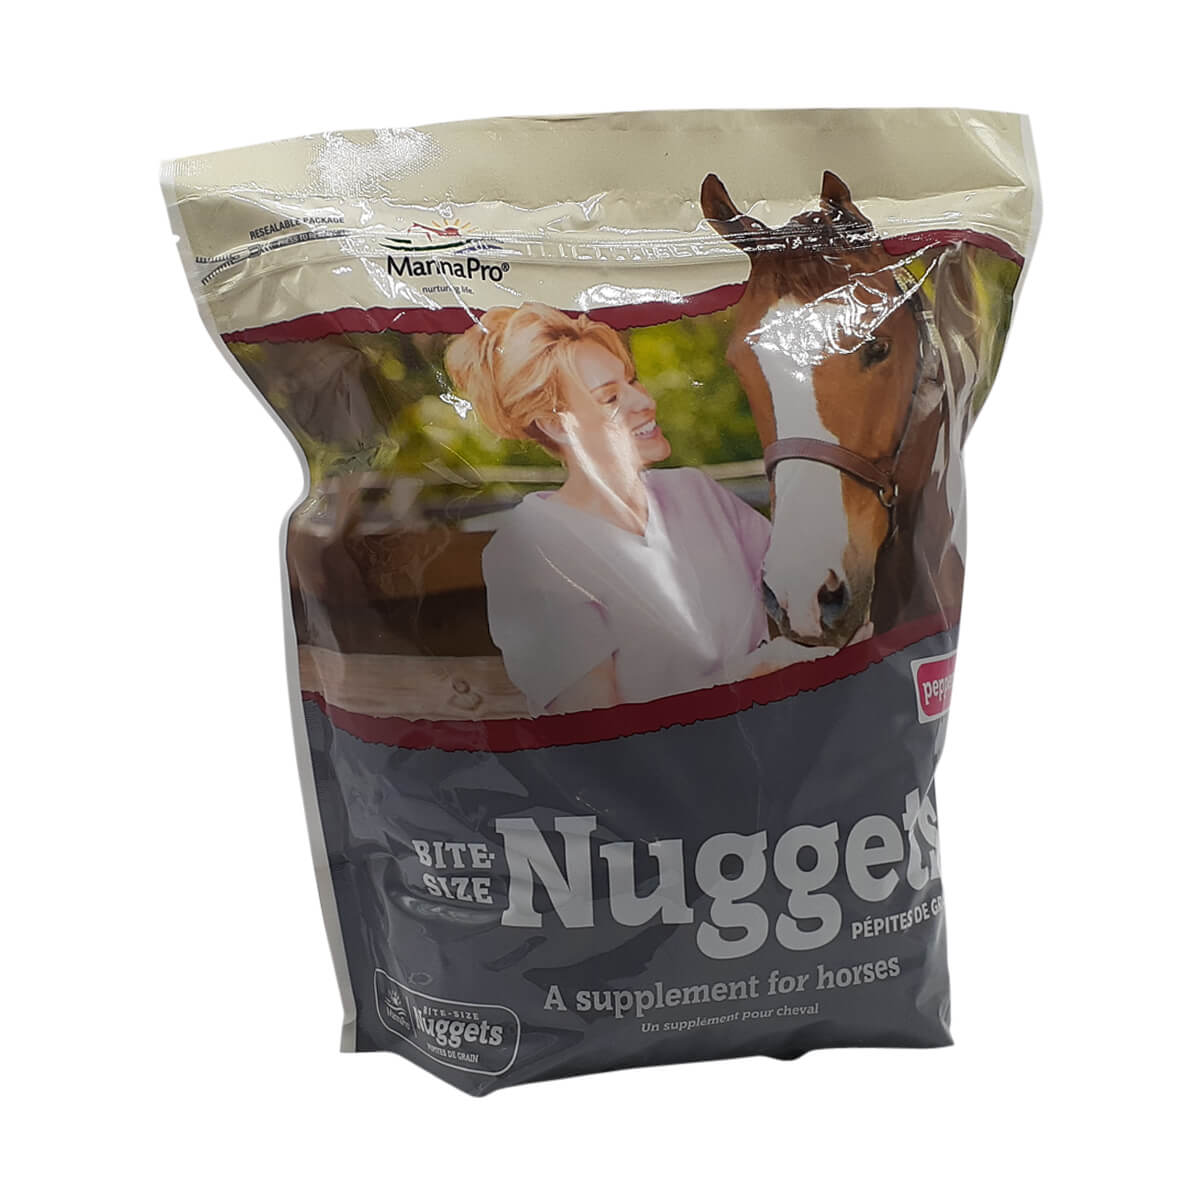 Bite-Sized Apple Nuggets for Horses - Peppermint 5lb